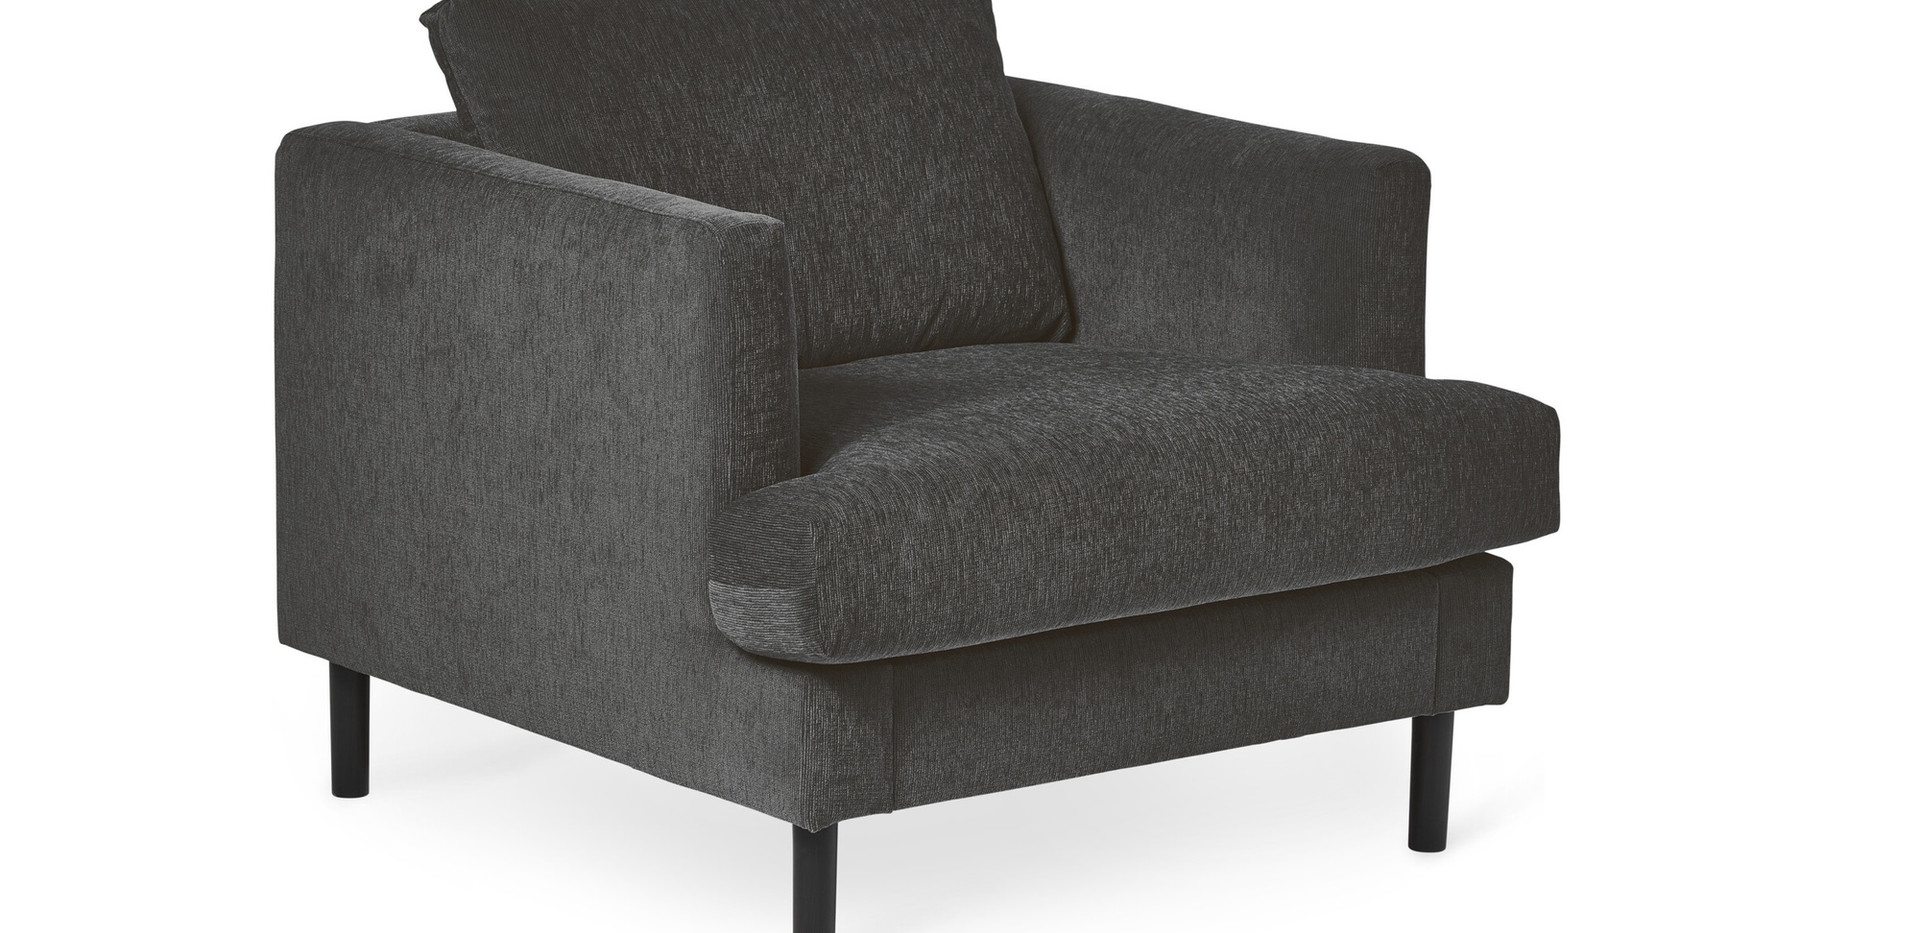 Maison 1so Nors anthracite